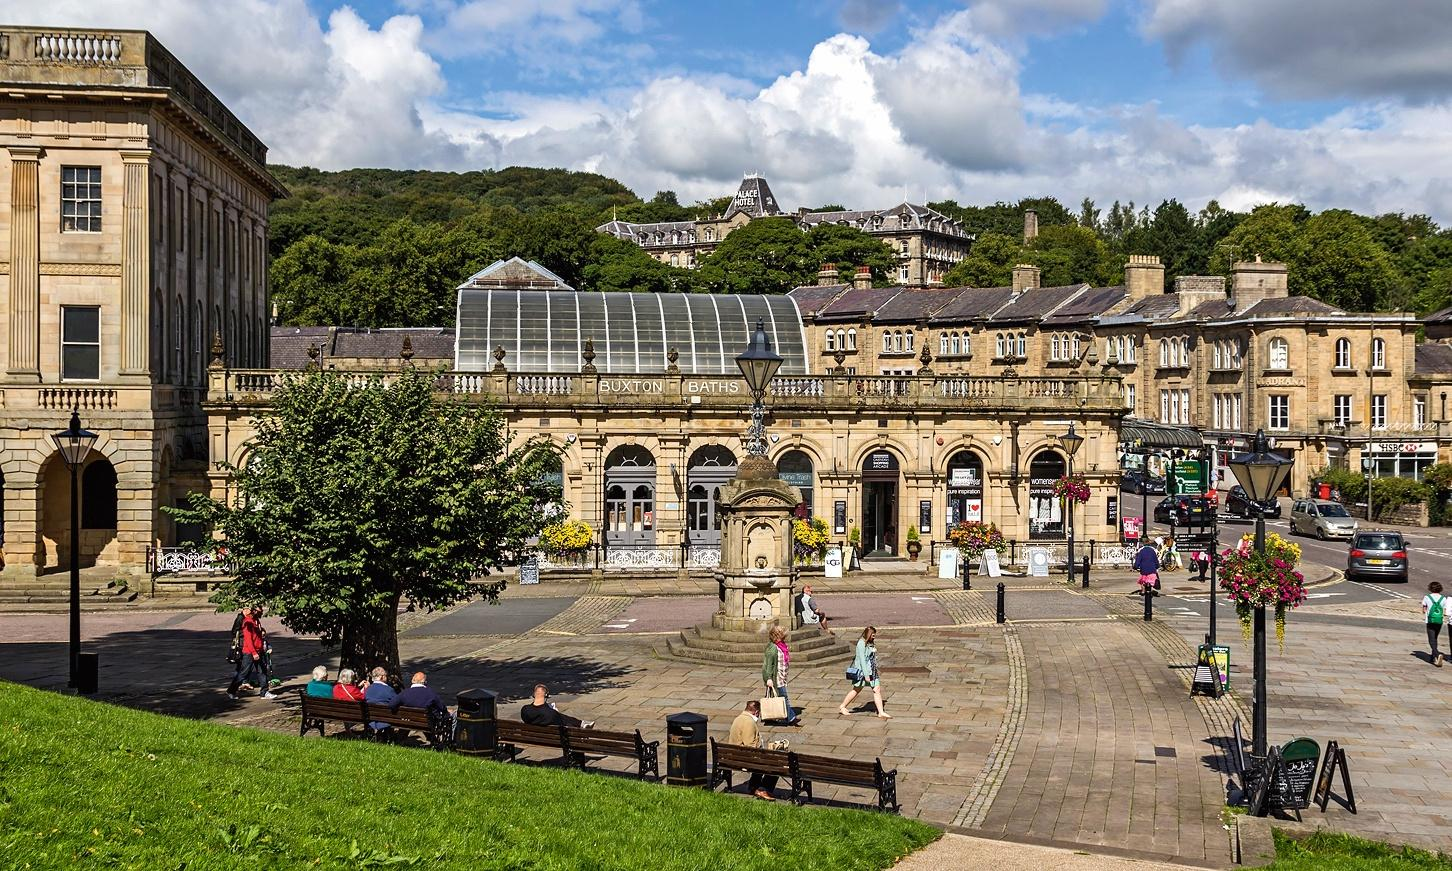 Let's move to Buxton, Derbyshire: it's good for mind, body and soul